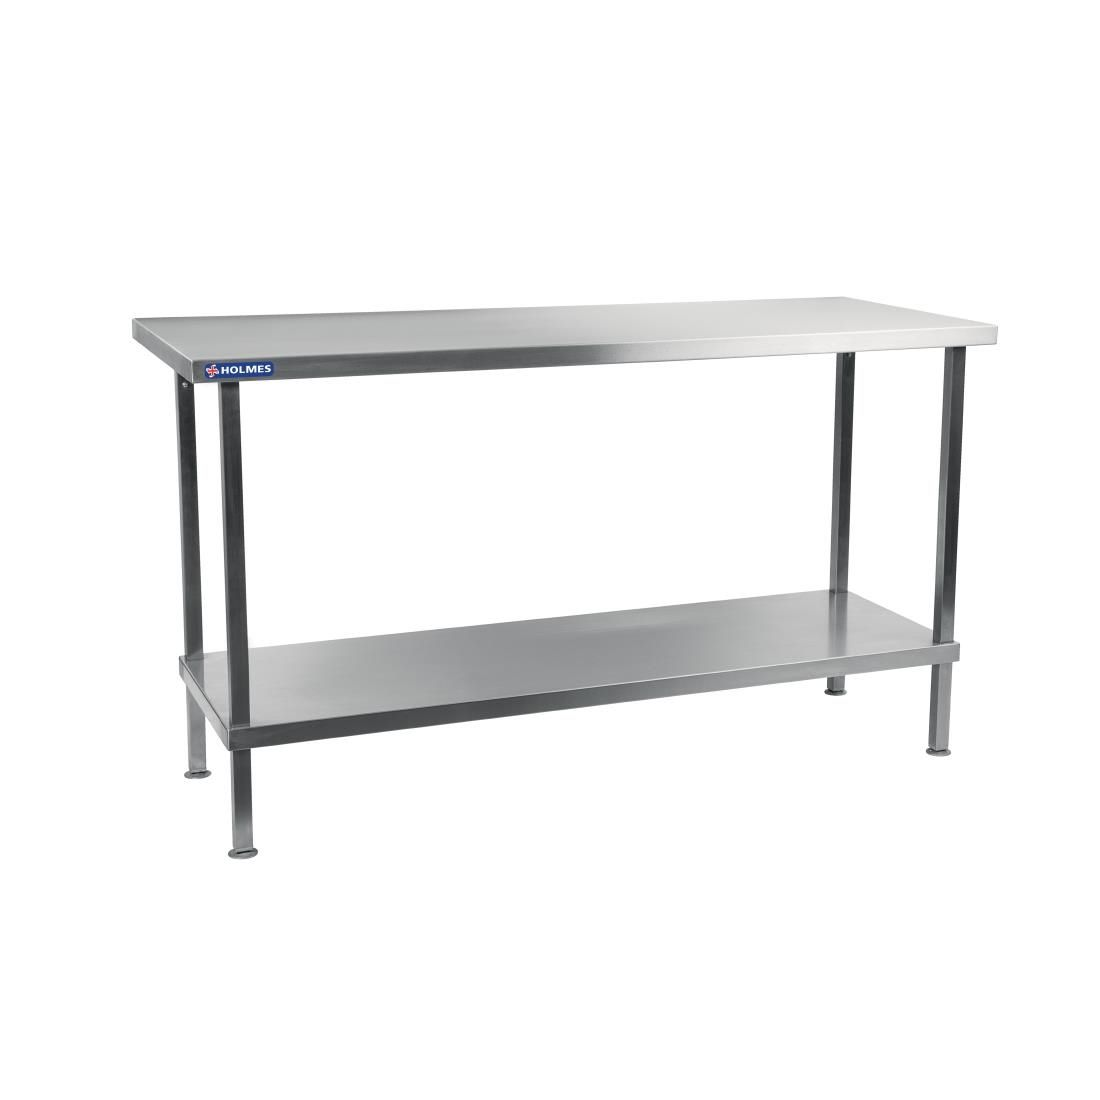 Holmes Stainless Steel Centre Table 1800mm - DR052